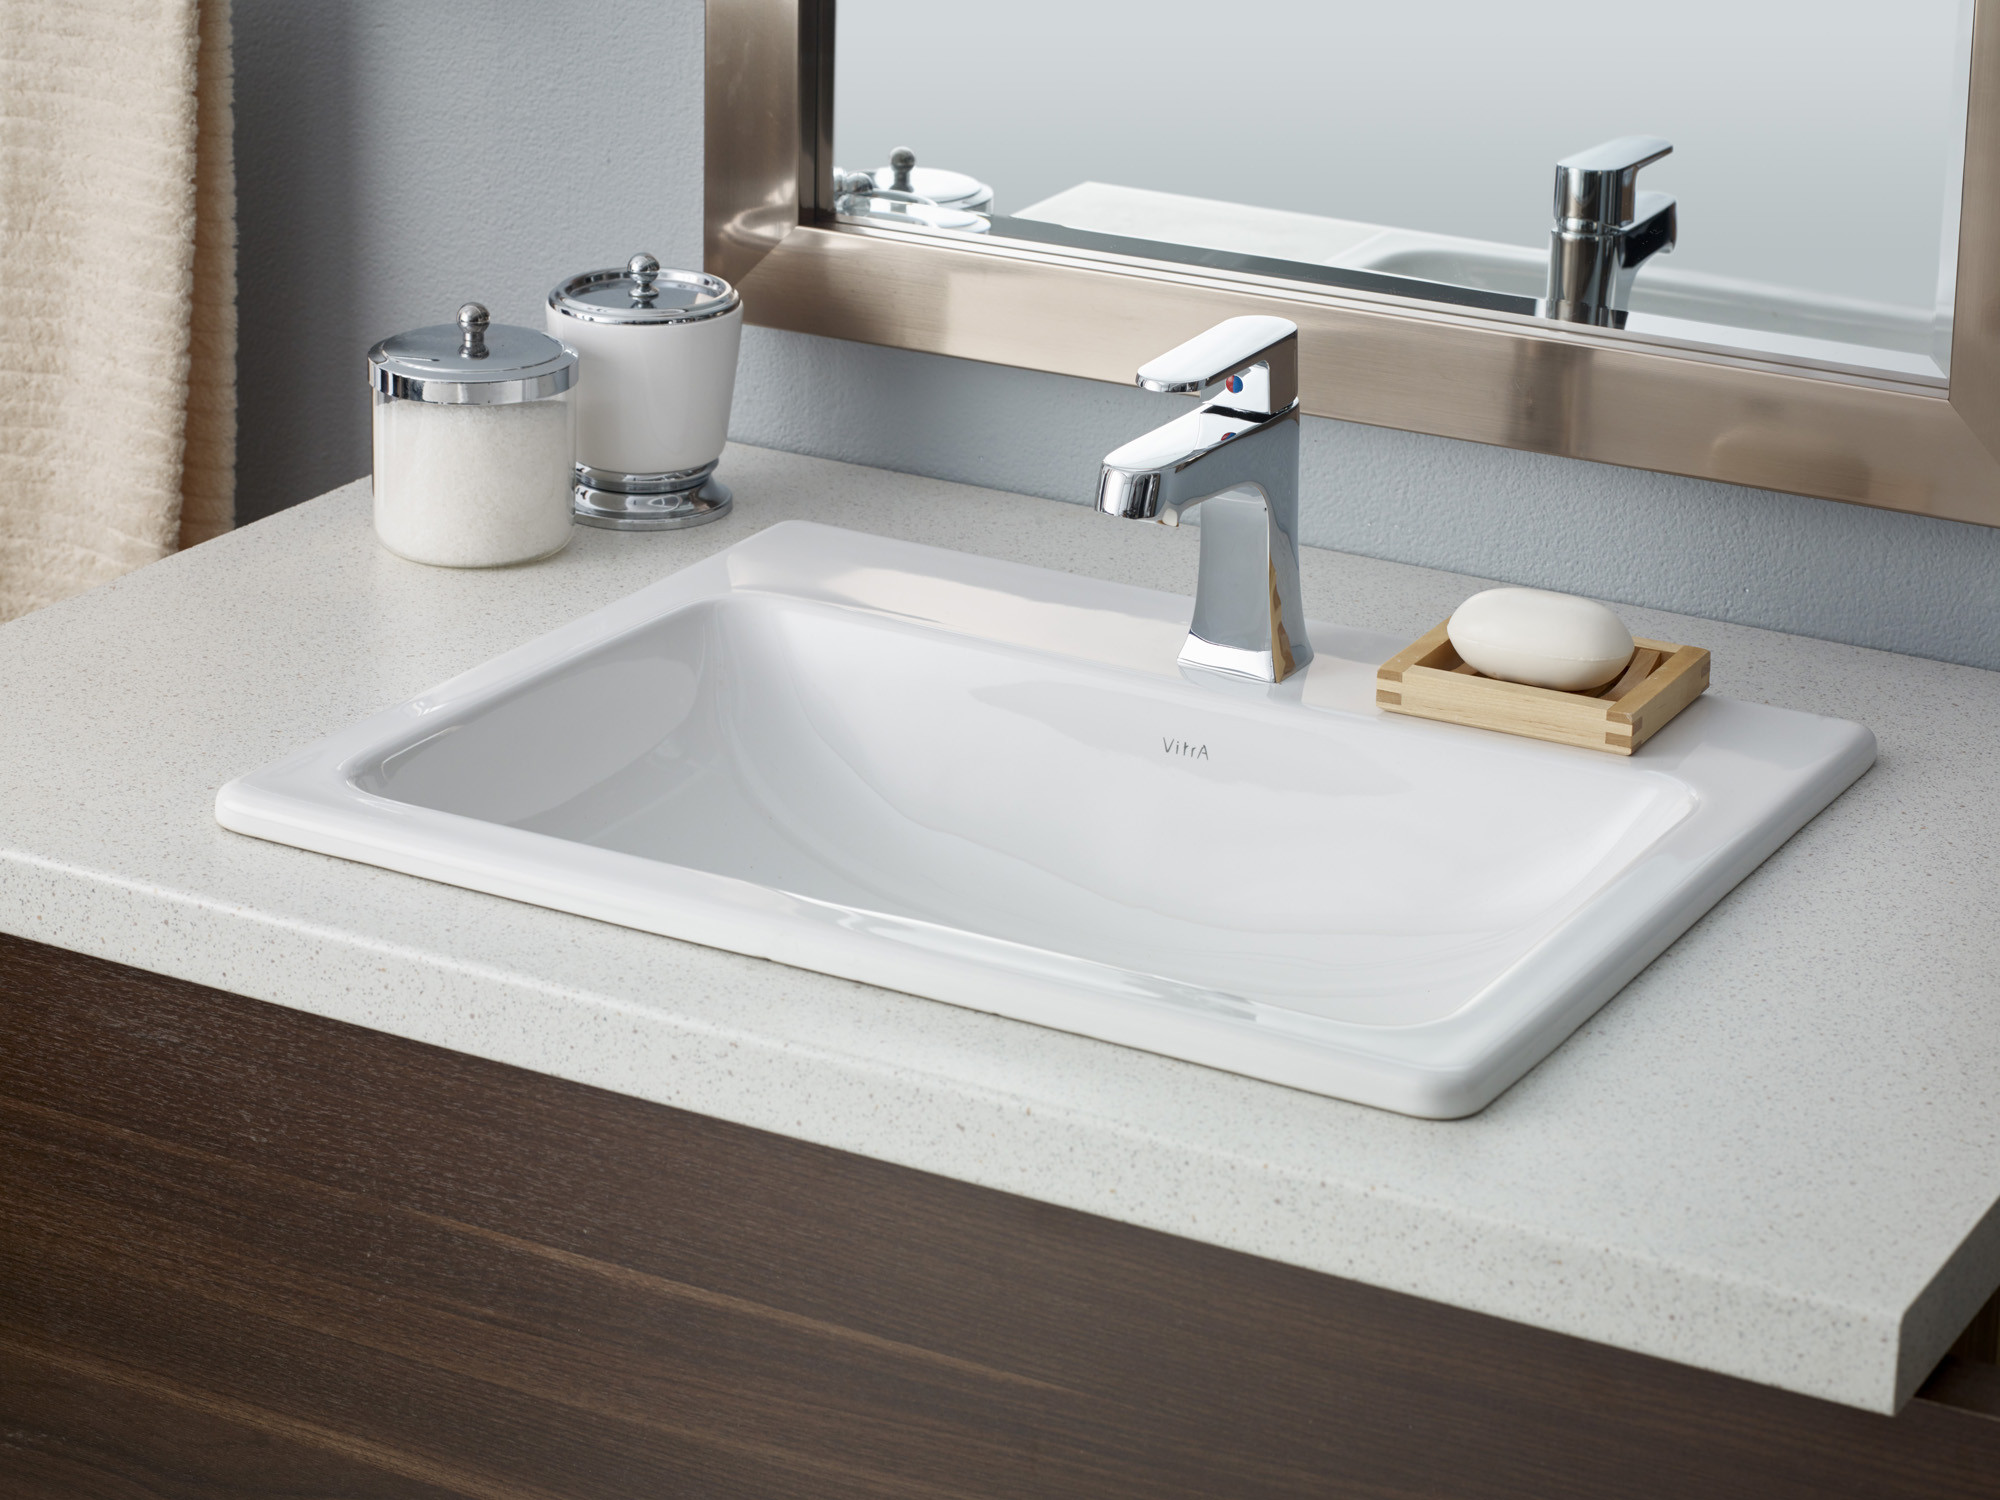 Cheviot 1187-WH-1 Manhattan Drop In Rectangular Bathroom Basin in White